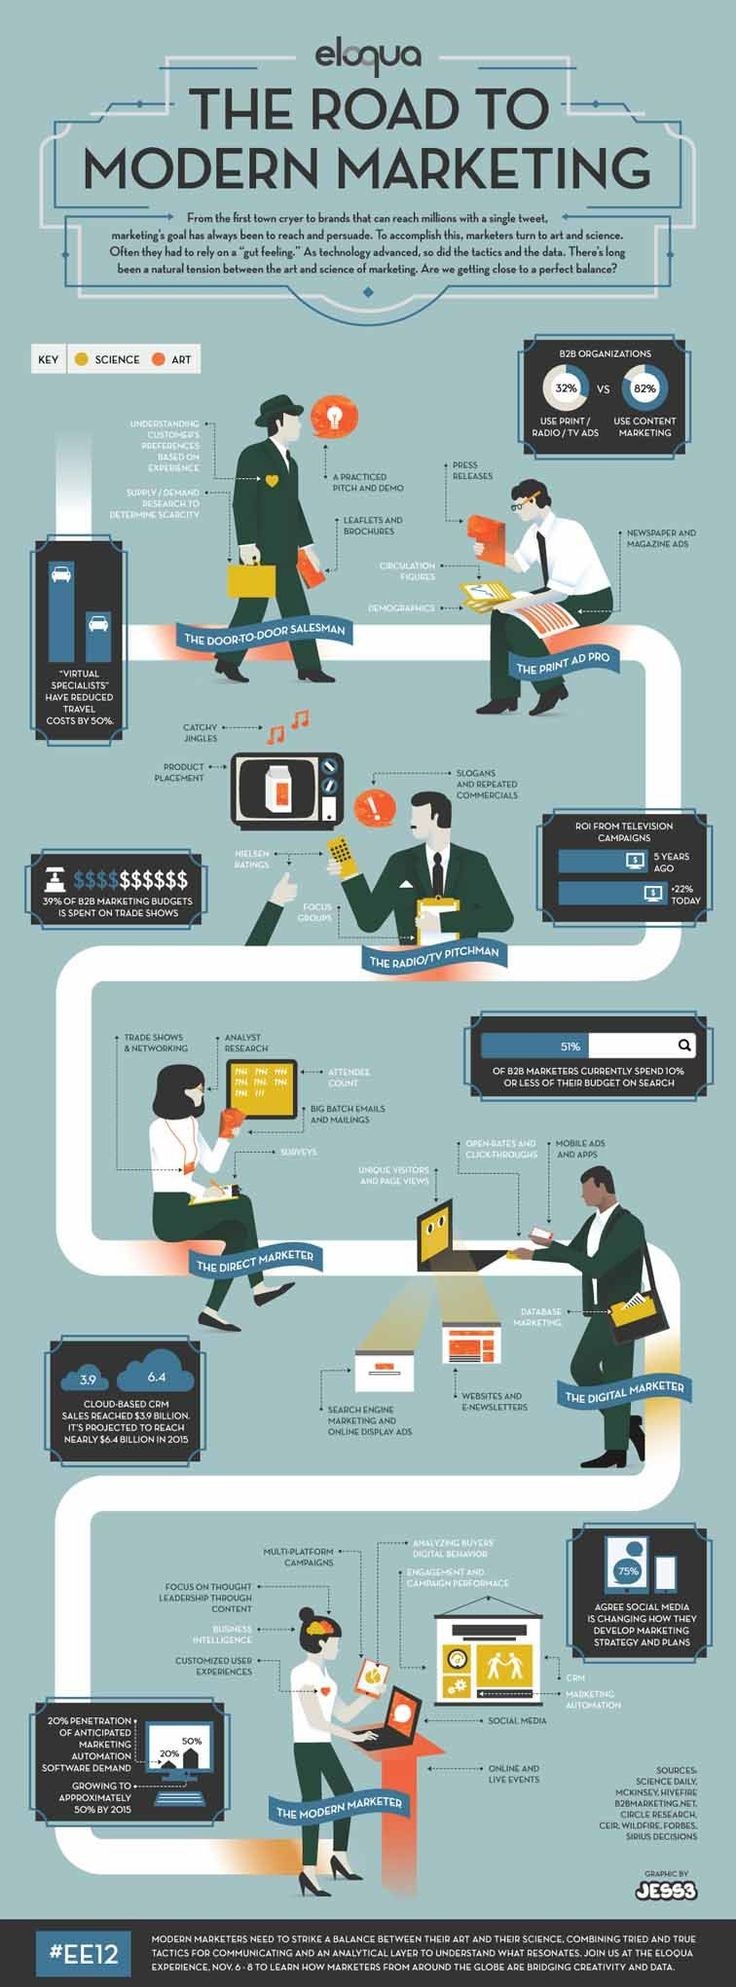 What Is The Road To Modern Marketing? #infographic